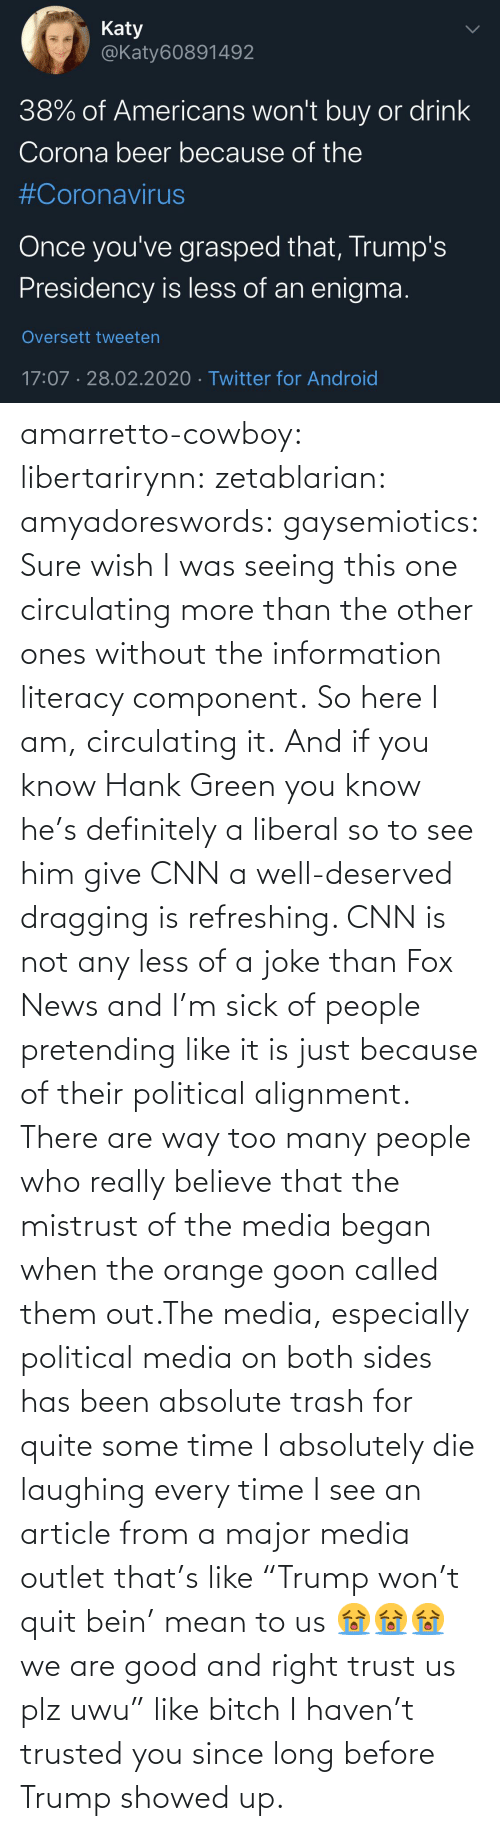 "Sick: amarretto-cowboy:  libertarirynn:  zetablarian:  amyadoreswords:   gaysemiotics:       Sure wish I was seeing this one circulating more than the other ones without the information literacy component. So here I am, circulating it.    And if you know Hank Green you know he's definitely a liberal so to see him give CNN a well-deserved dragging is refreshing. CNN is not any less of a joke than Fox News and I'm sick of people pretending like it is just because of their political alignment.   There are way too many people who really believe that the mistrust of the media began when the orange goon called them out.The media, especially political media on both sides has been absolute trash for quite some time   I absolutely die laughing every time I see an article from a major media outlet that's like ""Trump won't quit bein' mean to us 😭😭😭 we are good and right trust us plz uwu"" like bitch I haven't trusted you since long before Trump showed up."